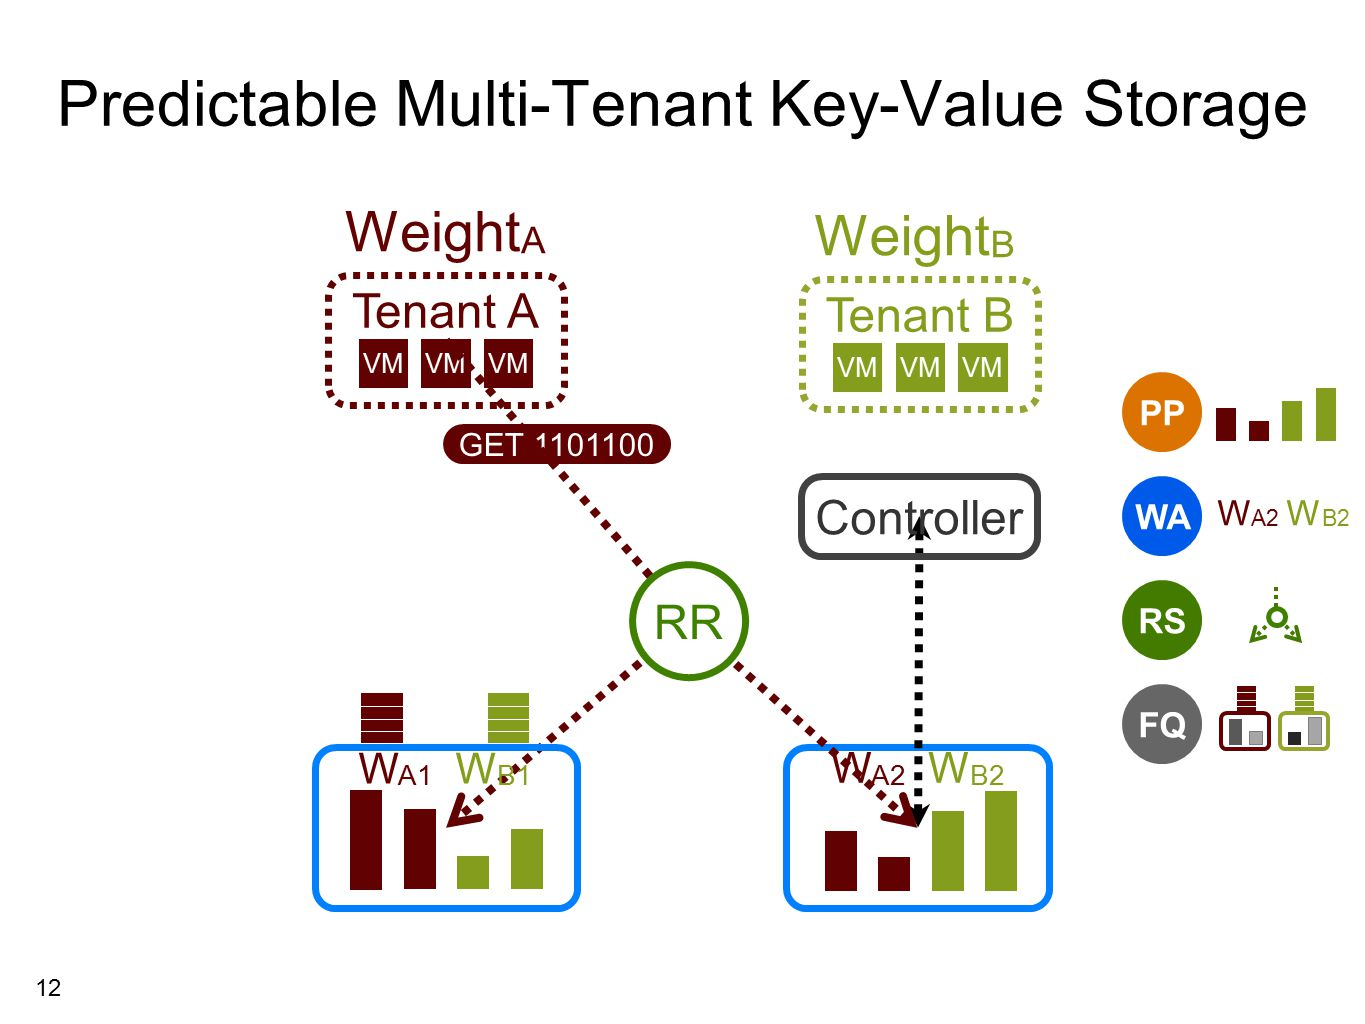 12 Tenant A Predictable Multi-Tenant Key-Value Storage Tenant B VM Weight A Weight B RS FQ PP WA W A2 W B2 GET 1101100 RR Controller W A2 W B2 W A1 W B1